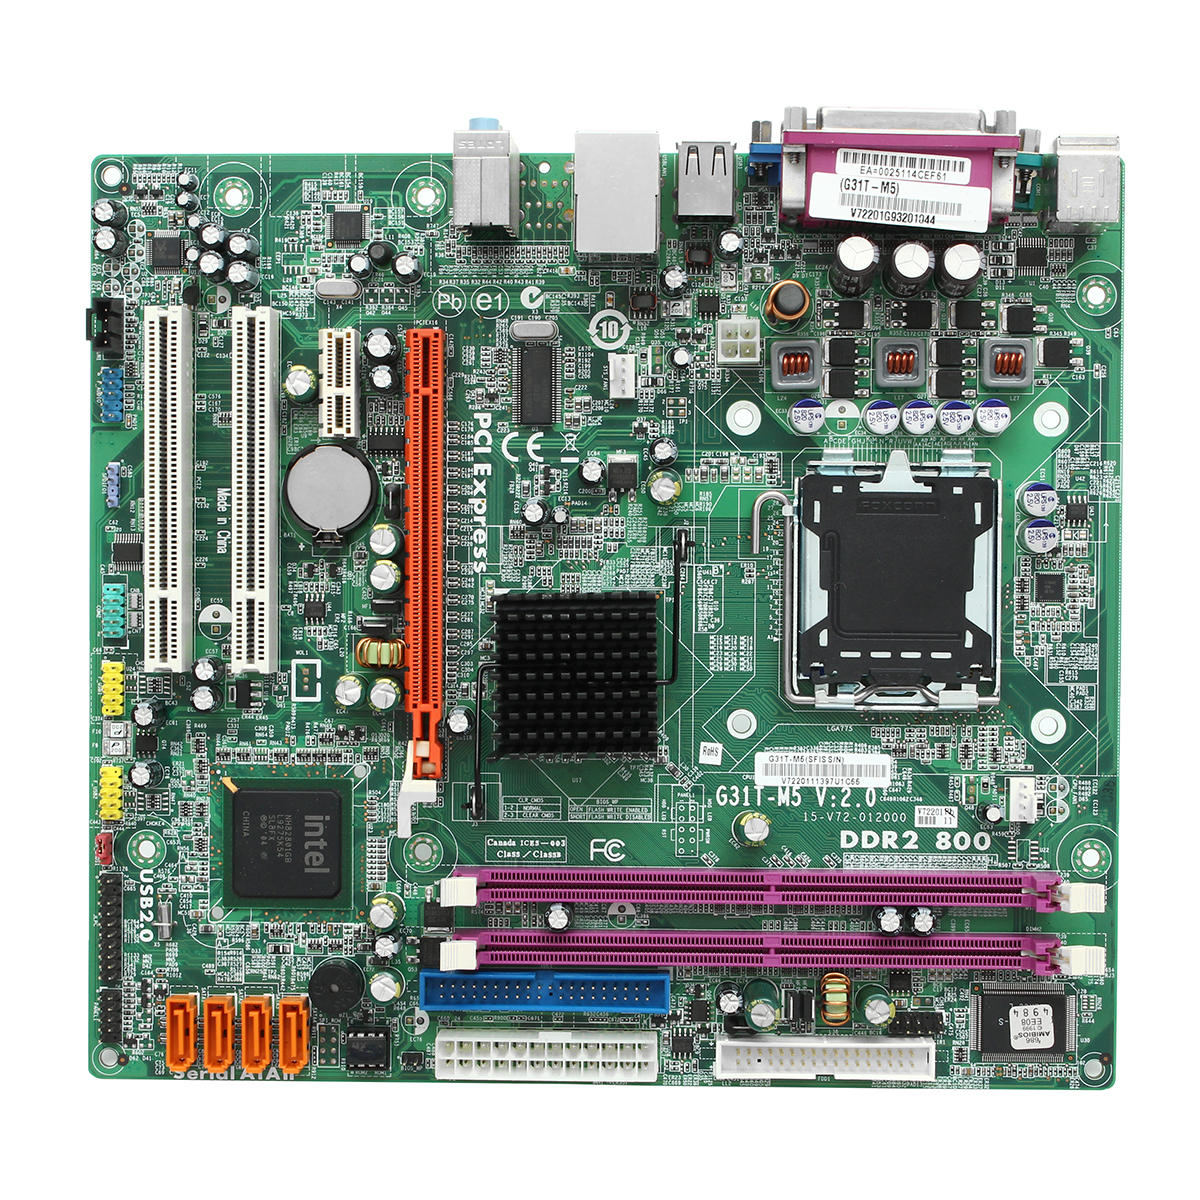 INTEL ICES 003 MOTHERBOARD DRIVERS FOR WINDOWS 7